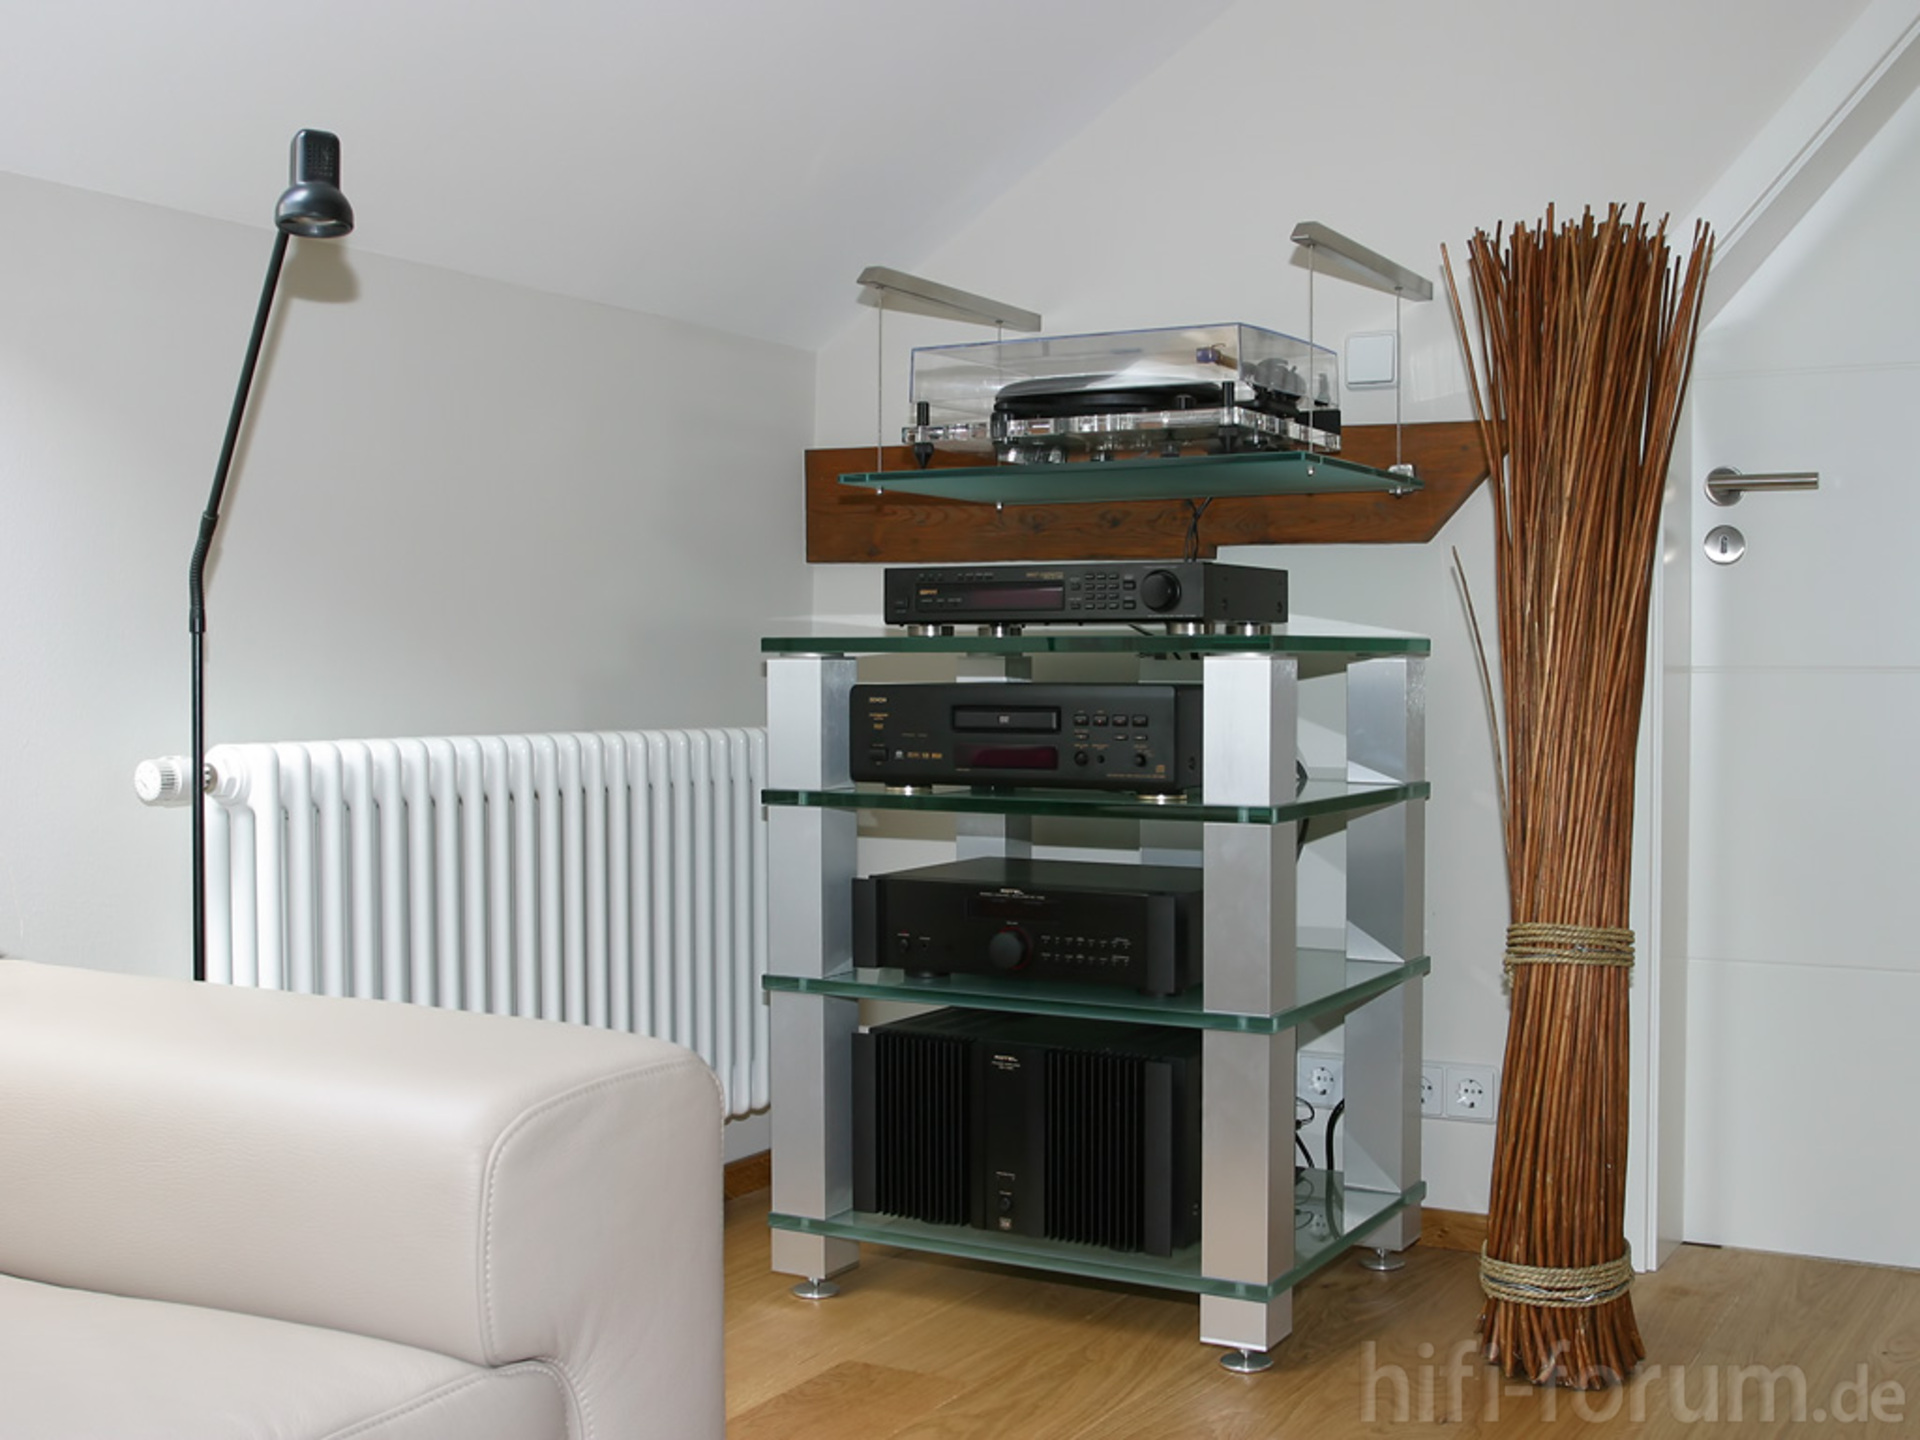 rotel im spectral rack rotel spectralrack stereo hifi bildergalerie. Black Bedroom Furniture Sets. Home Design Ideas